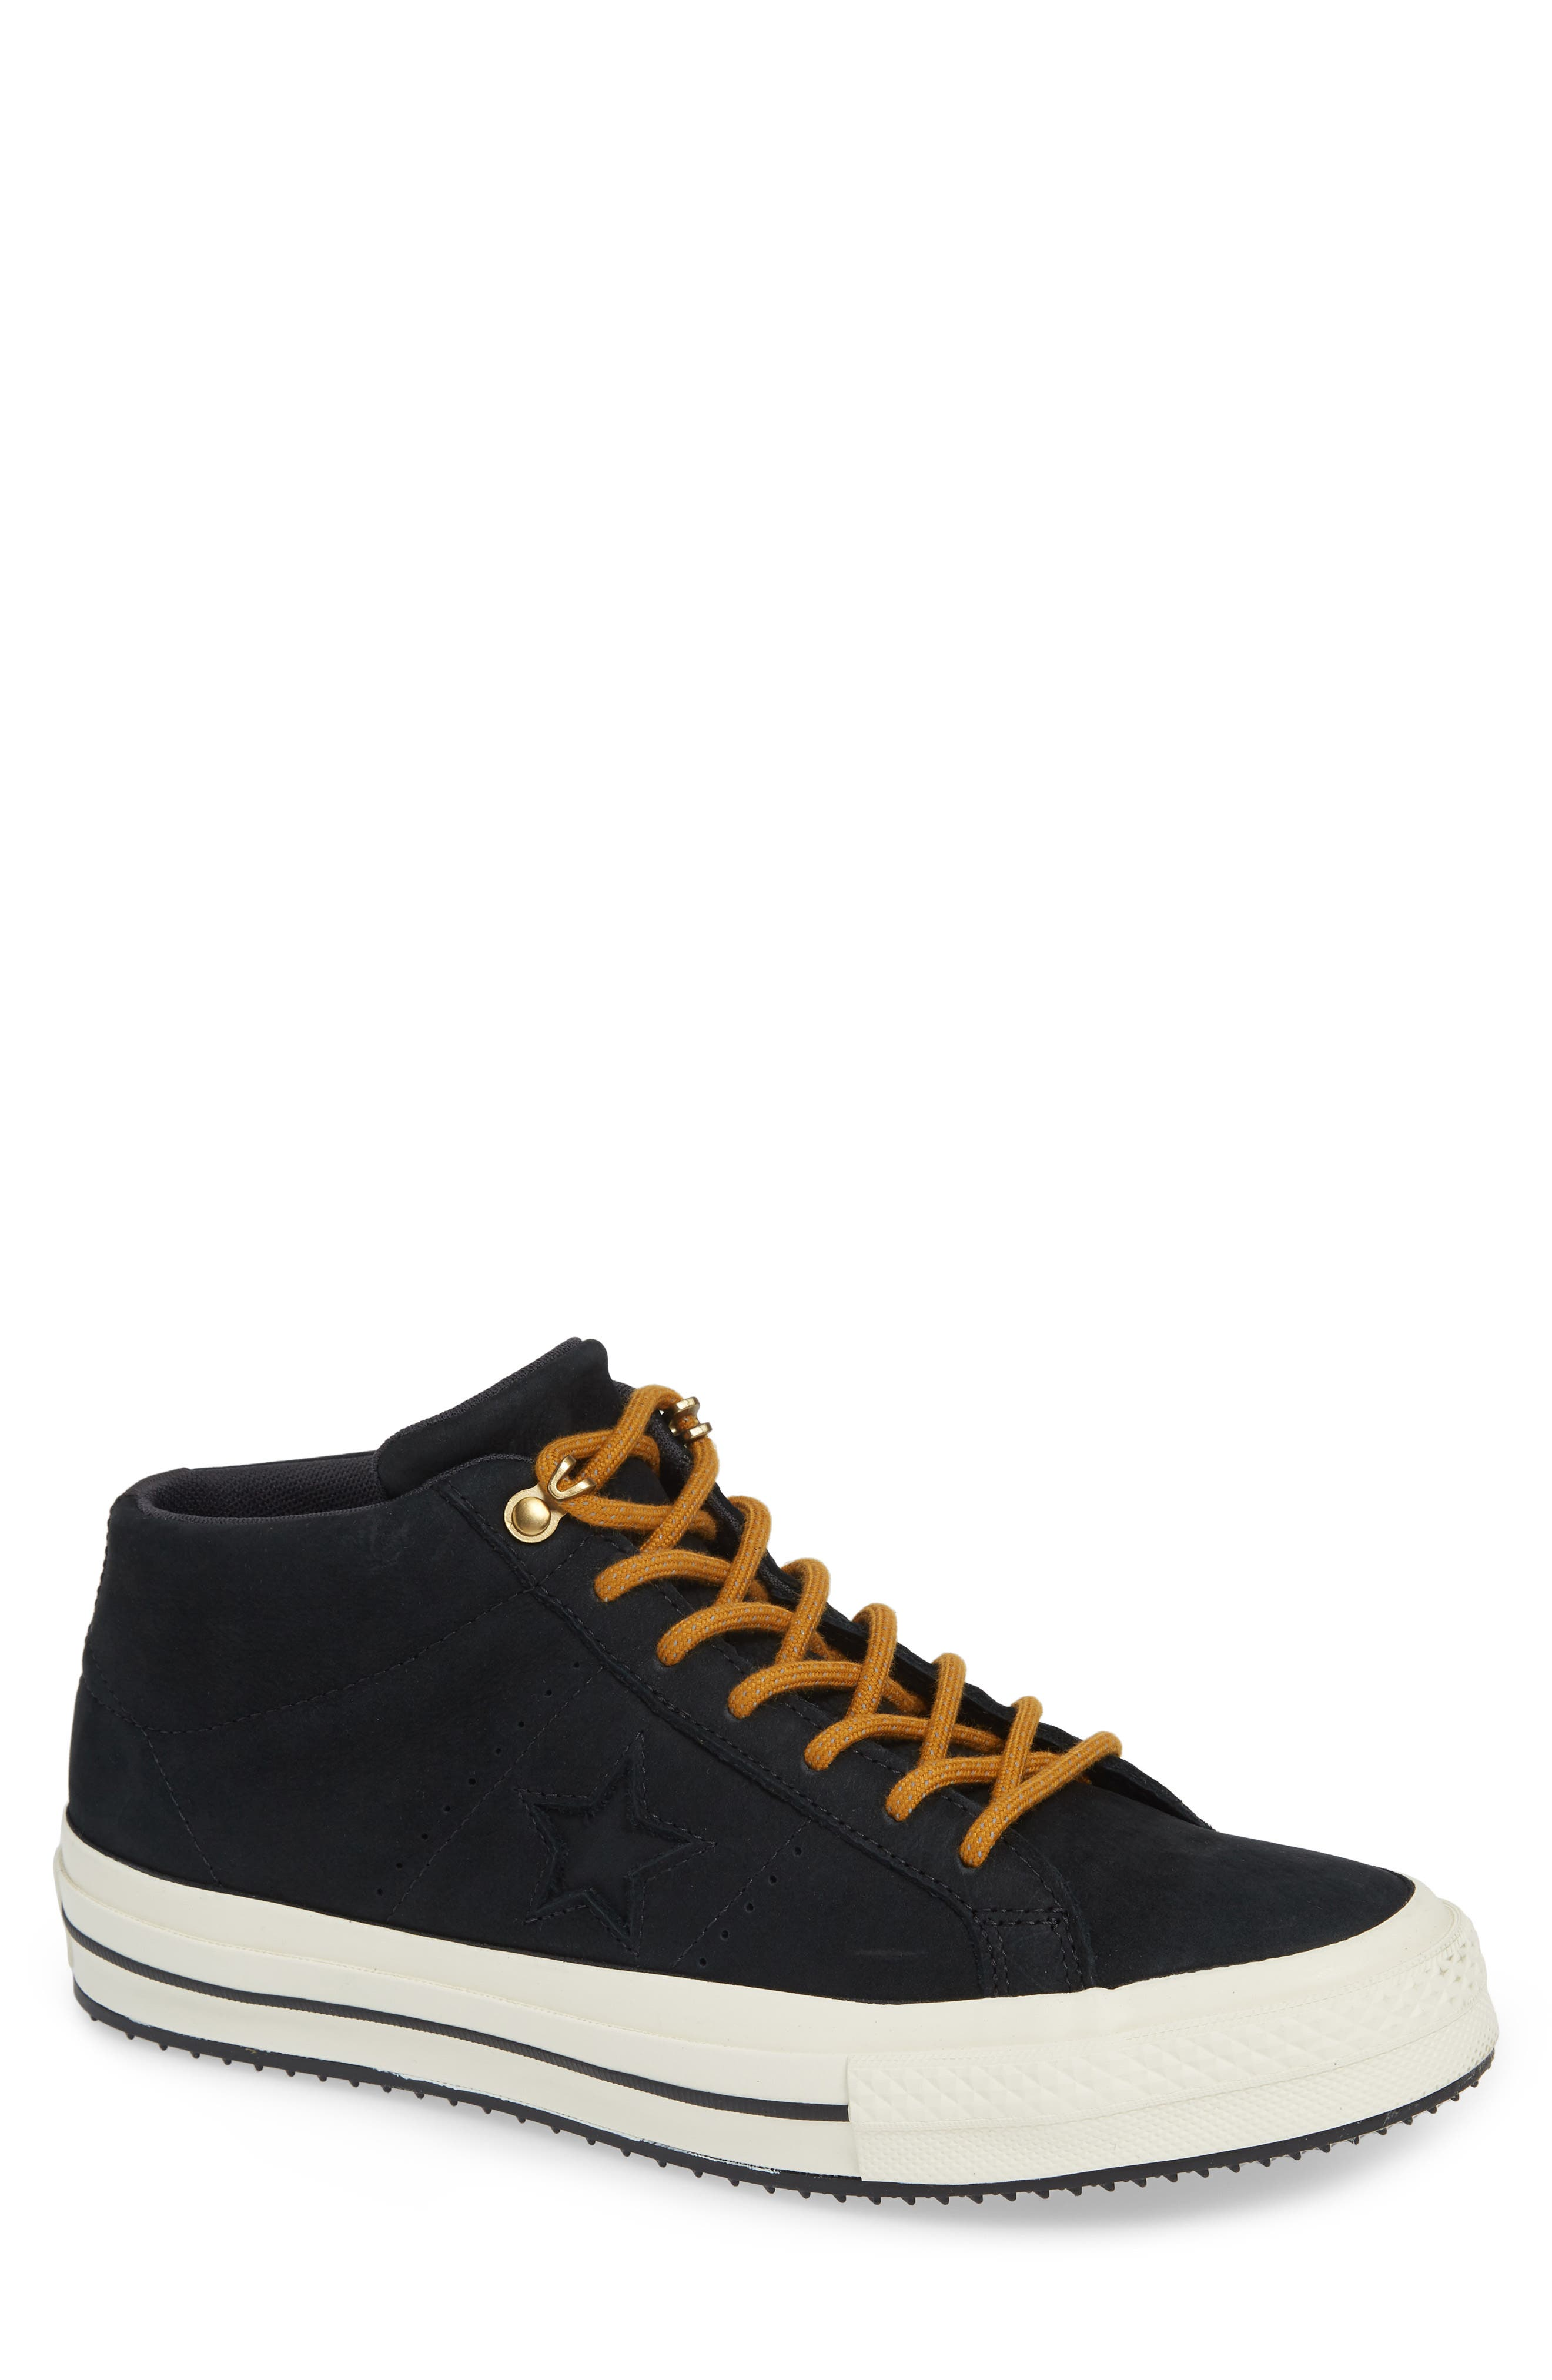 One Star Mid Counter Climate Scout Sneaker,                         Main,                         color, BLACK/ BLUE HERO/ TEAK SUEDE